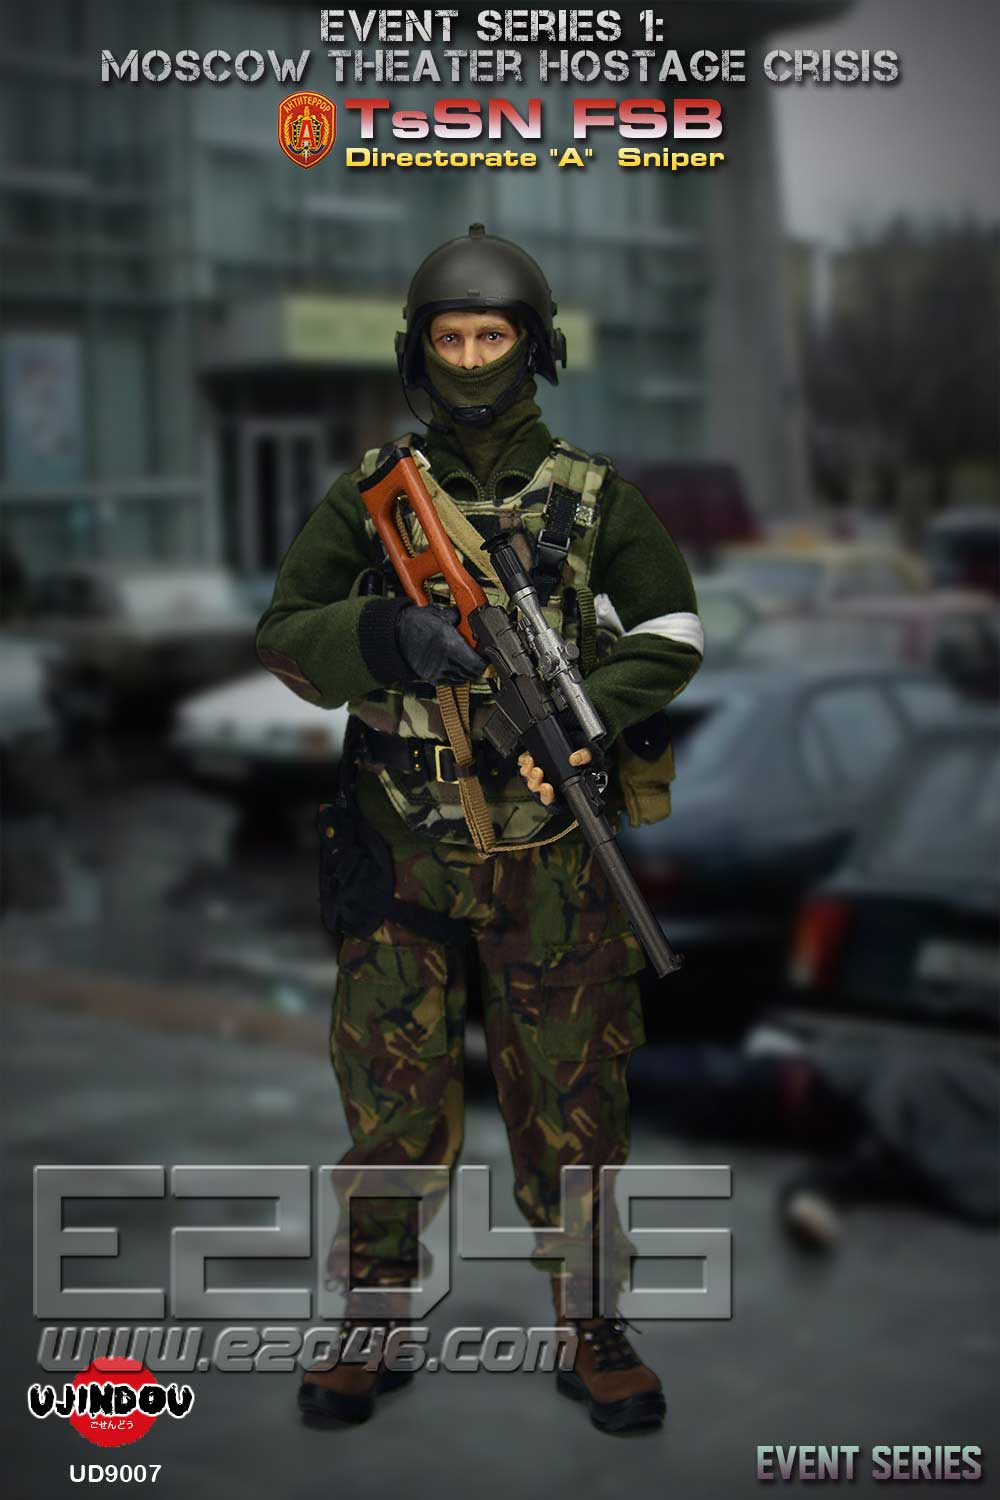 TsSN FSB - Moscow Theater Hostage Crisis (DOLL)